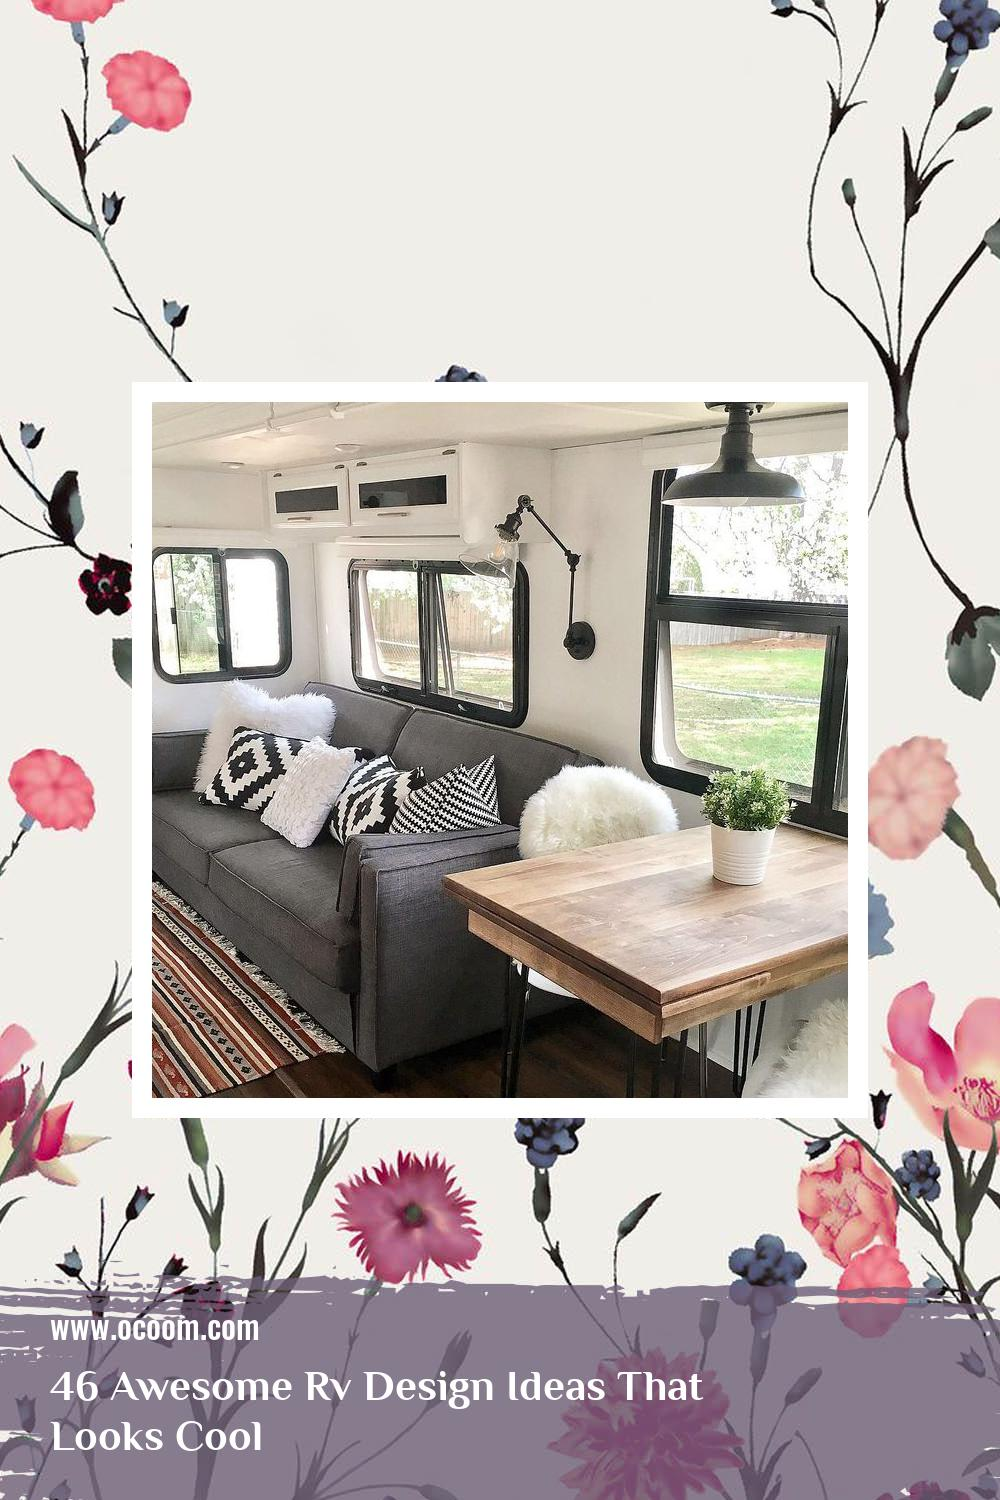 46 Awesome Rv Design Ideas That Looks Cool 8